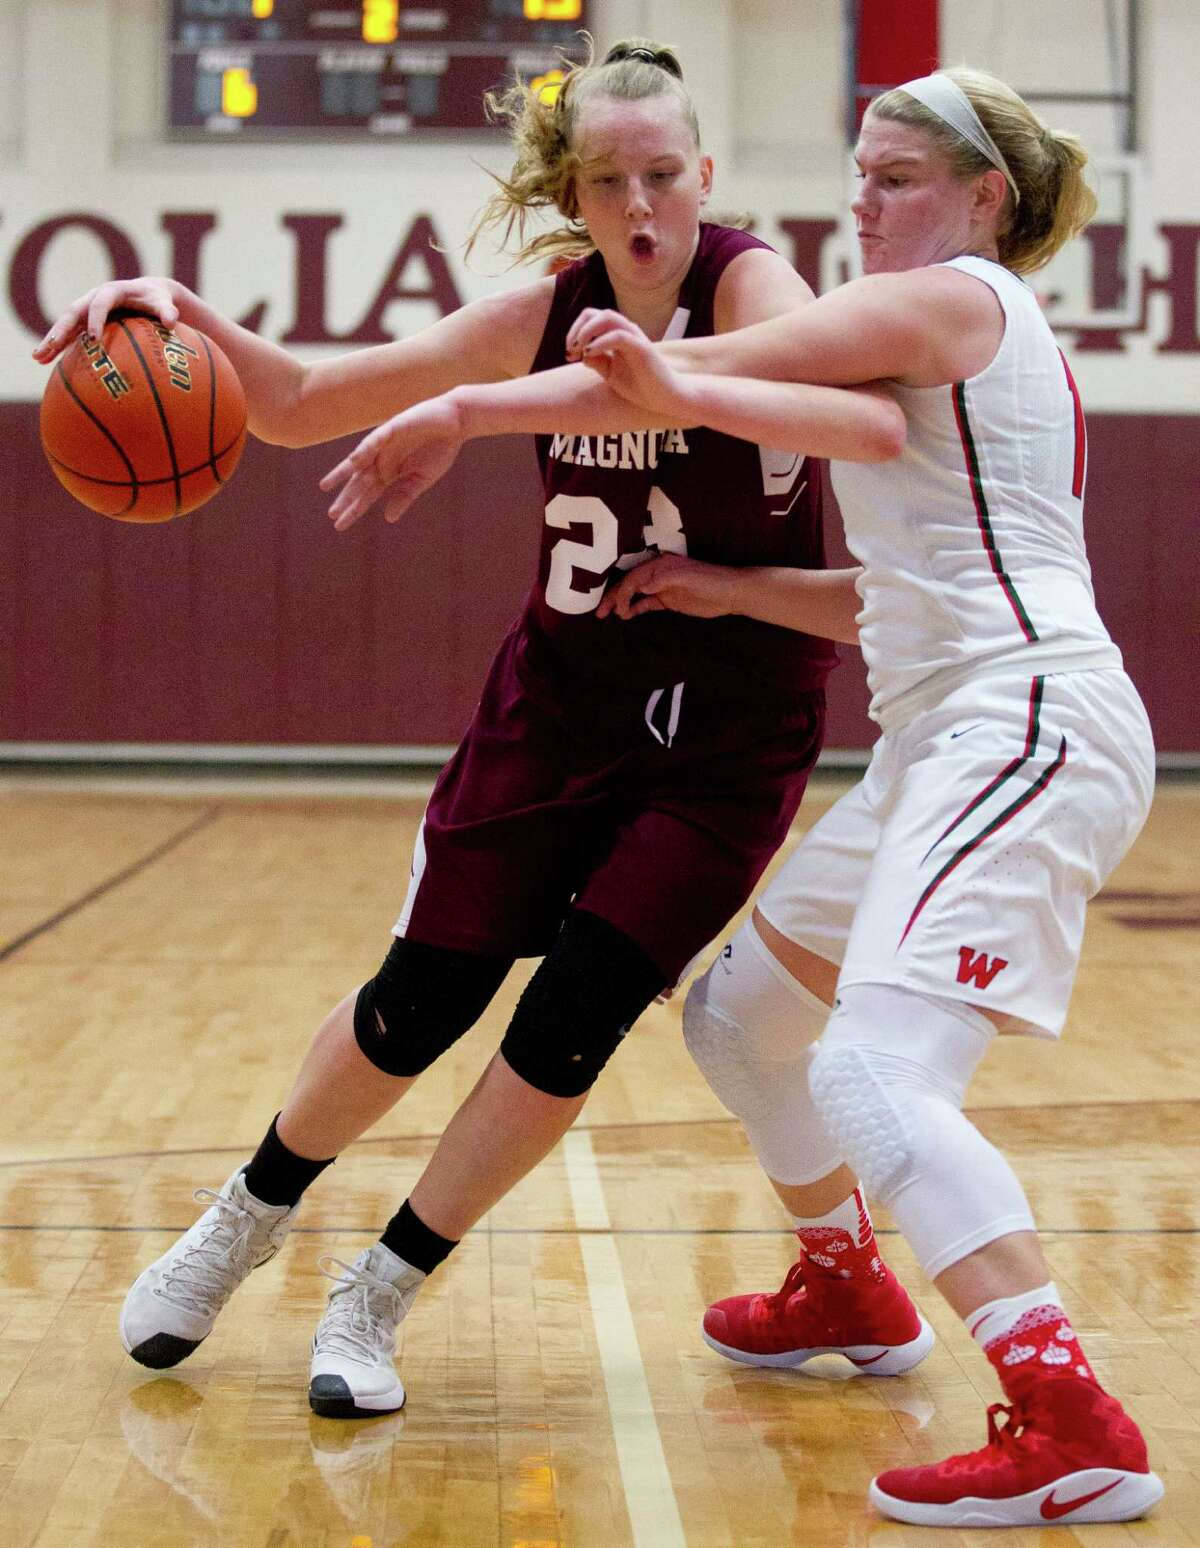 Magnolia forward Alexus Wykoff (23) works inside as The Woodlands forward Madison Morton (15) defends during the second quarter of a high school girls basketball game at the Magnolia Holiday Hoop Fest Friday, Dec. 30, 2016, in Magnolia.